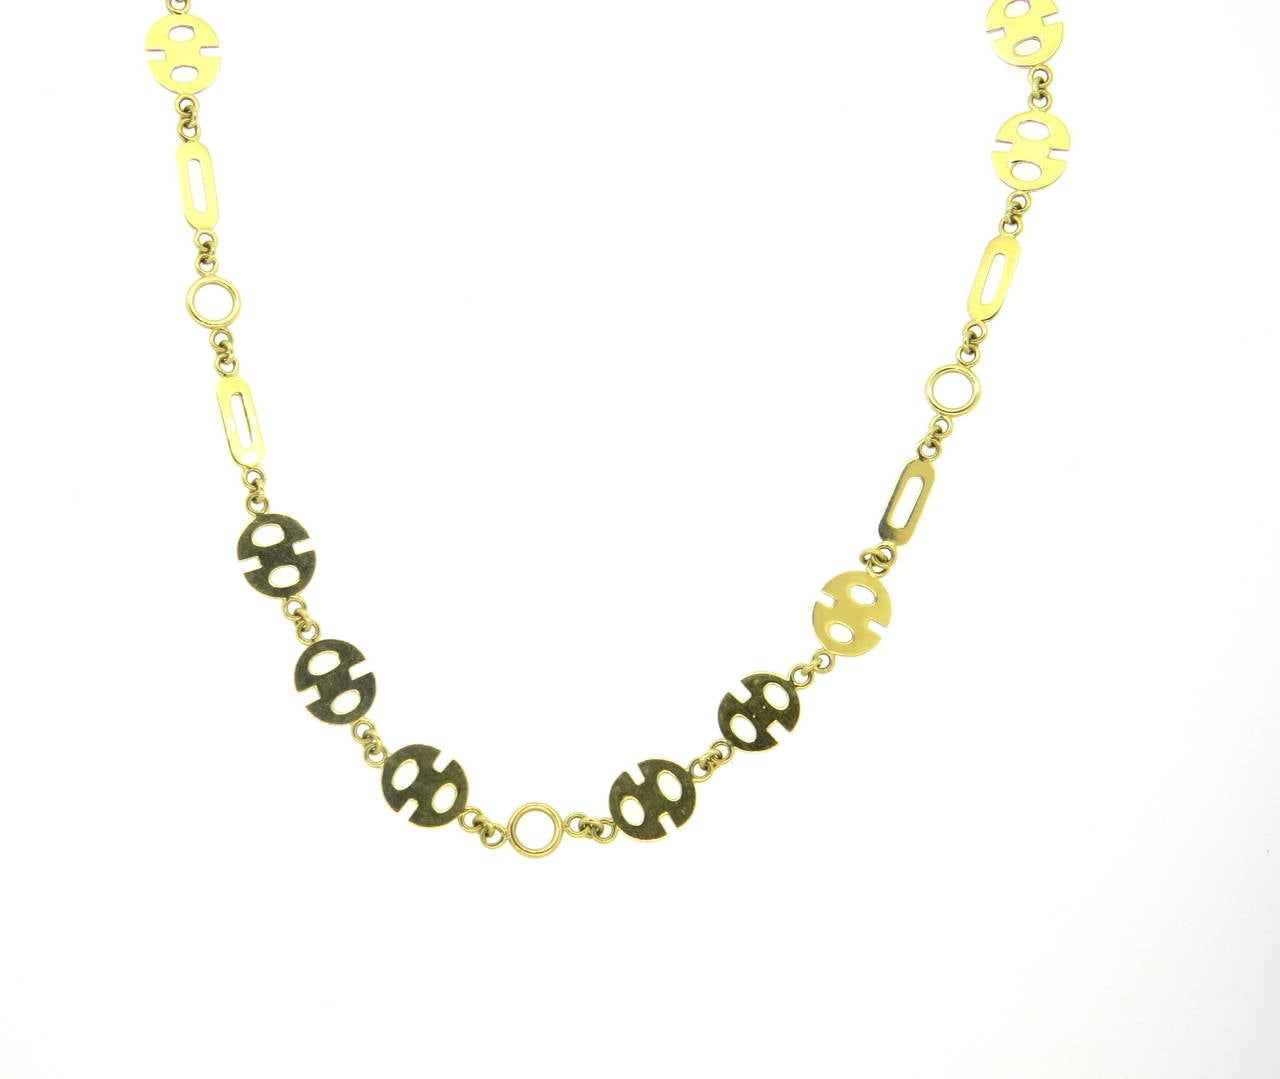 1970s 18k yellow gold unusual link necklace, measuring 26 1/8